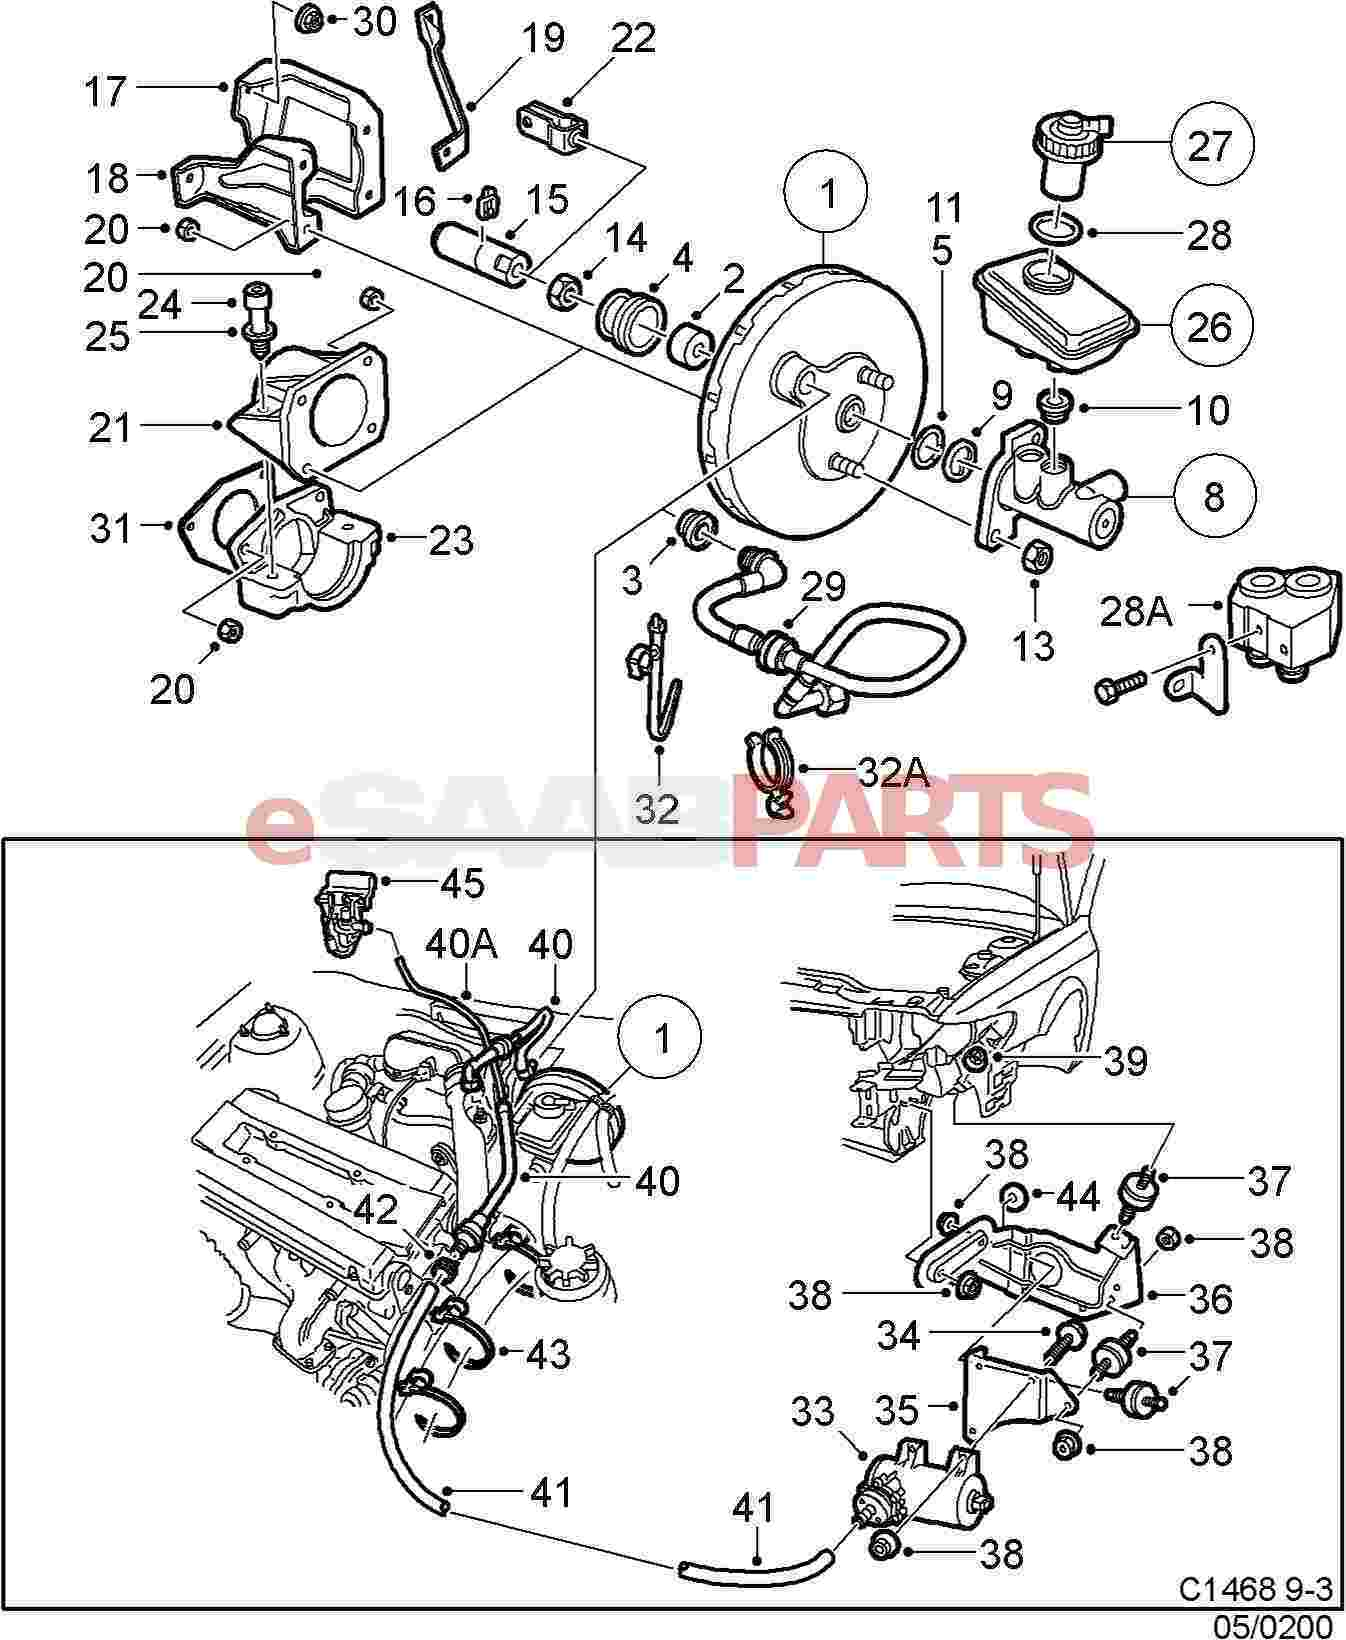 saab b204 engine diagram saab auto wiring diagram 2 3 linear saab engine diagram